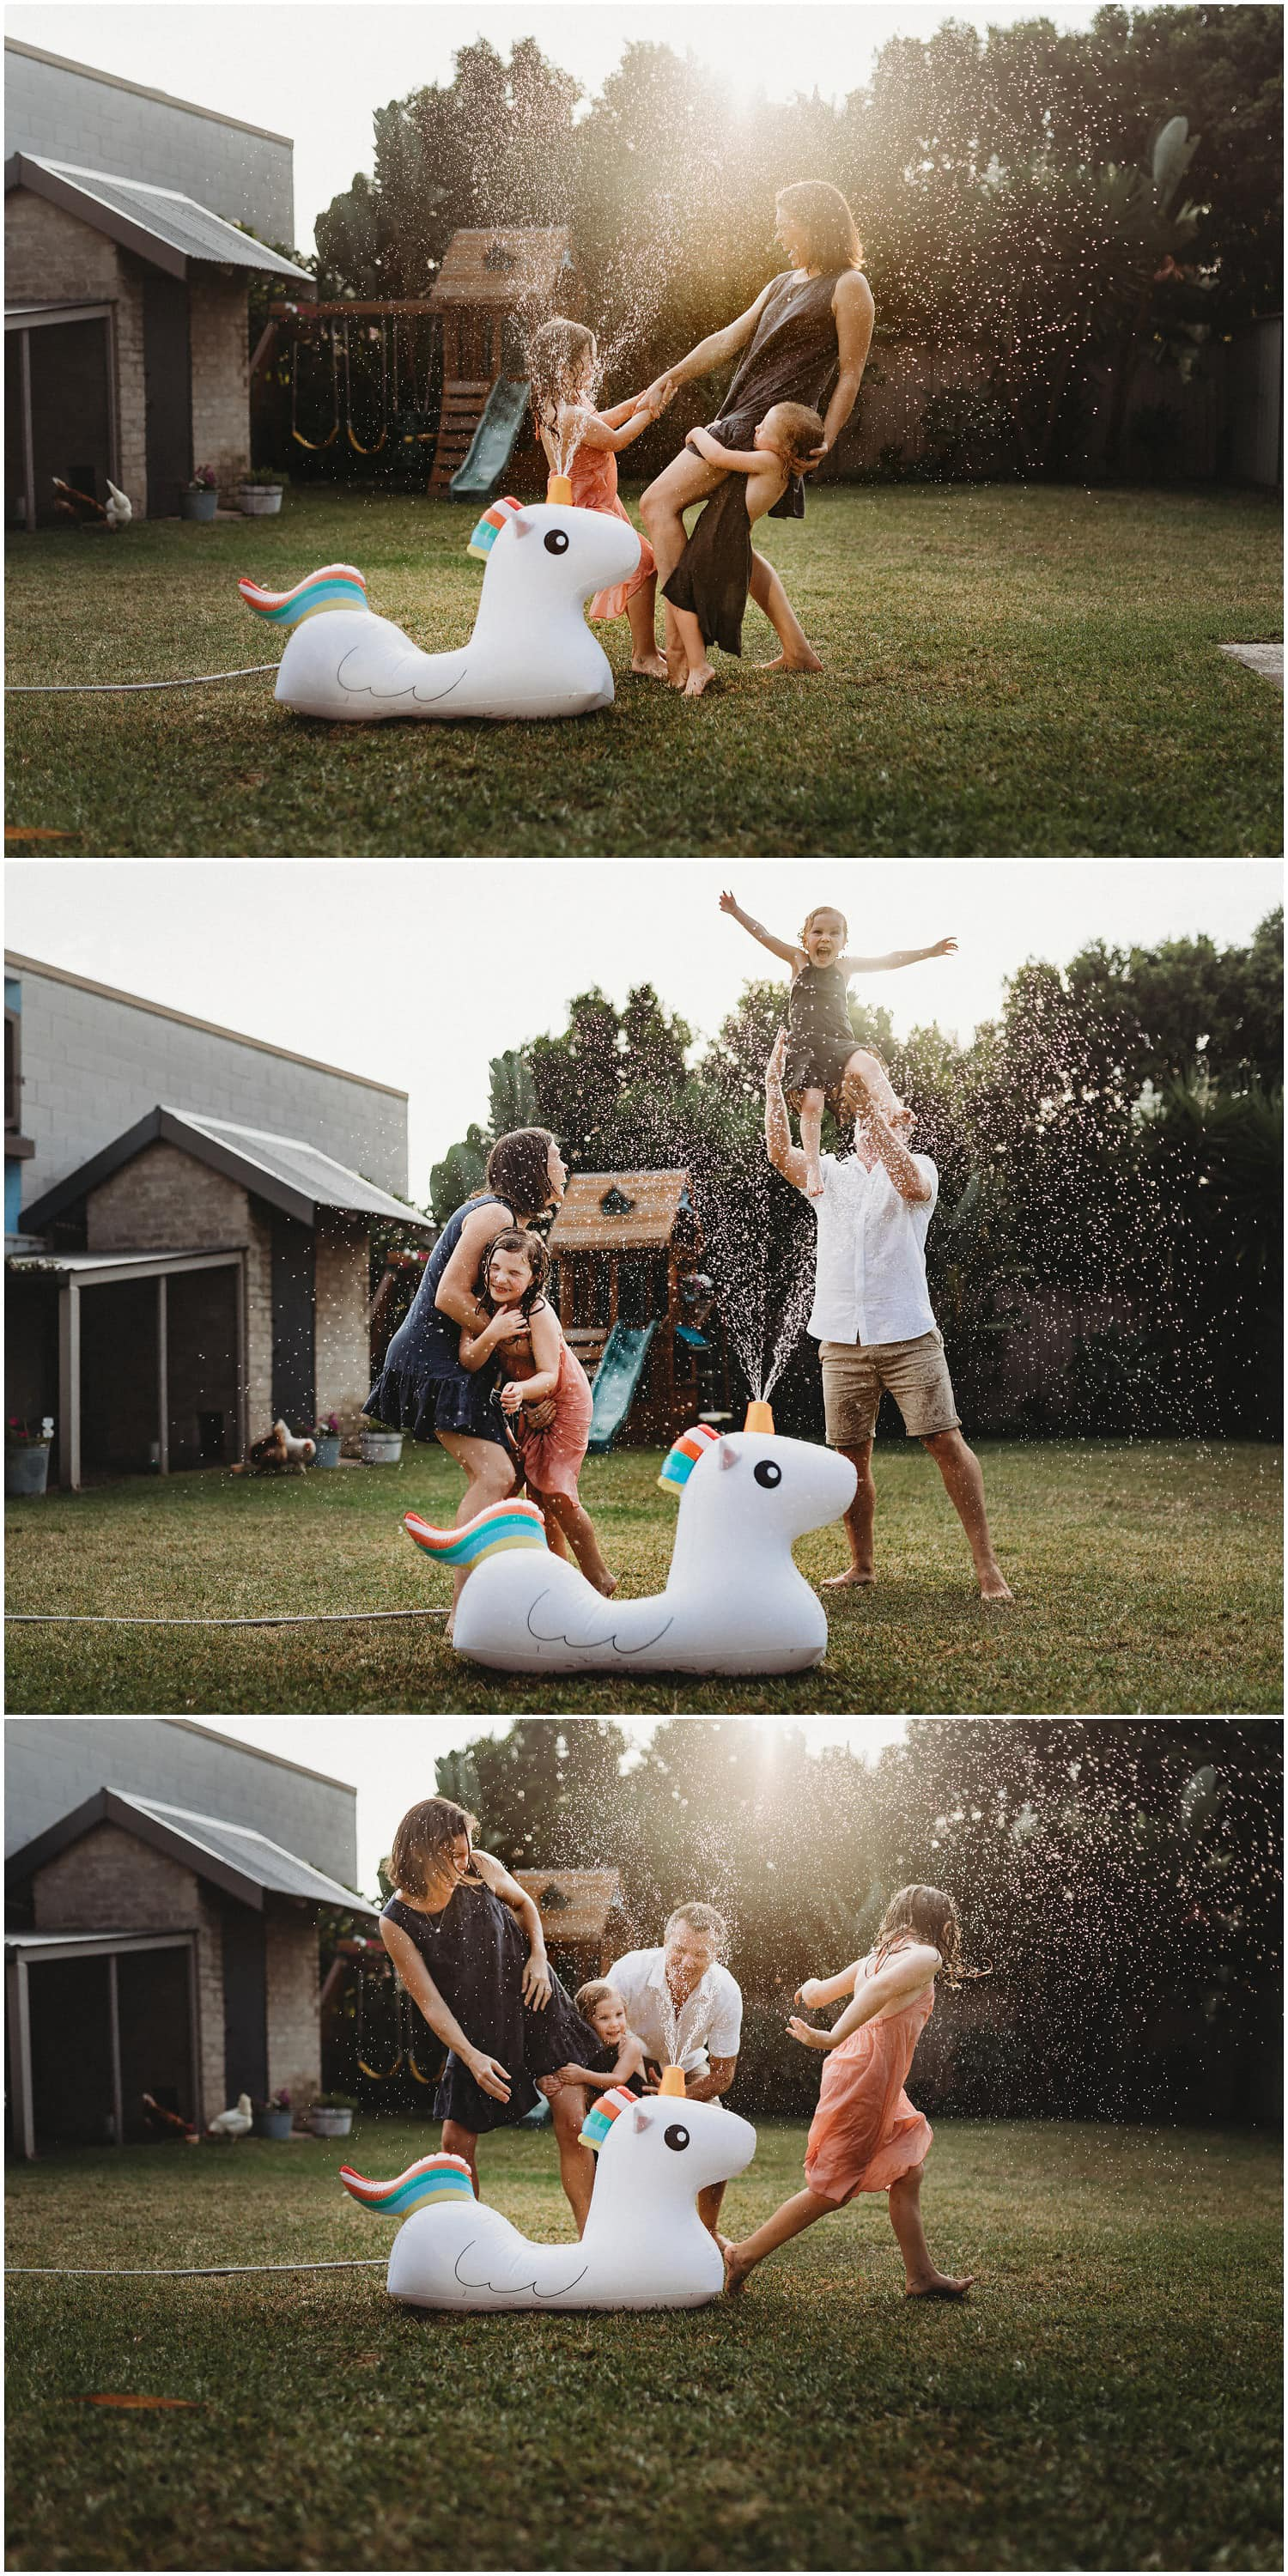 Sydney-backyard-family-photography-sutherland-shire-9